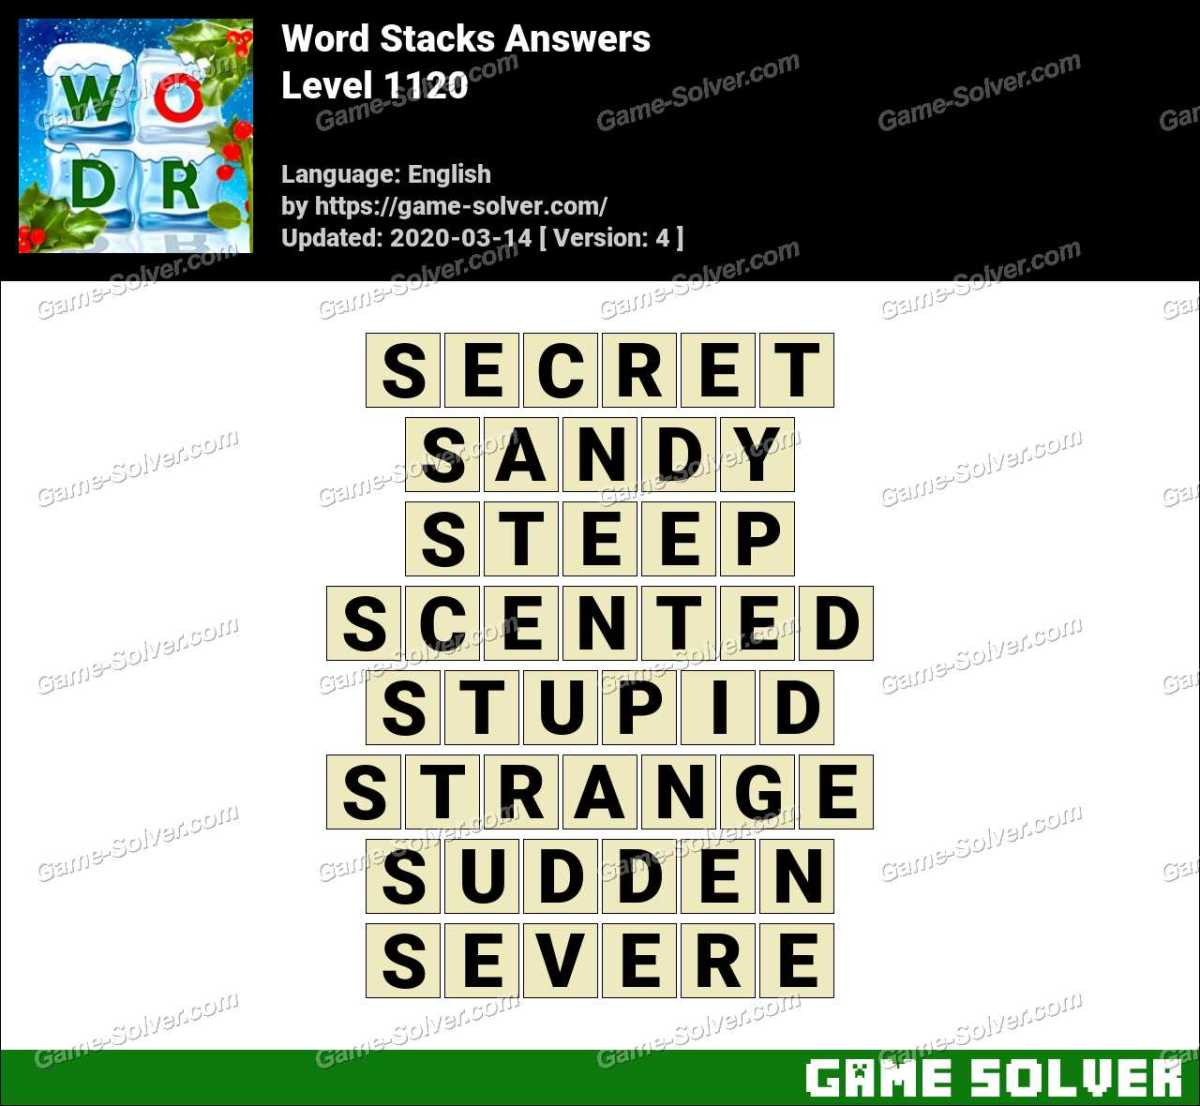 Word Stacks Level 1120 Answers